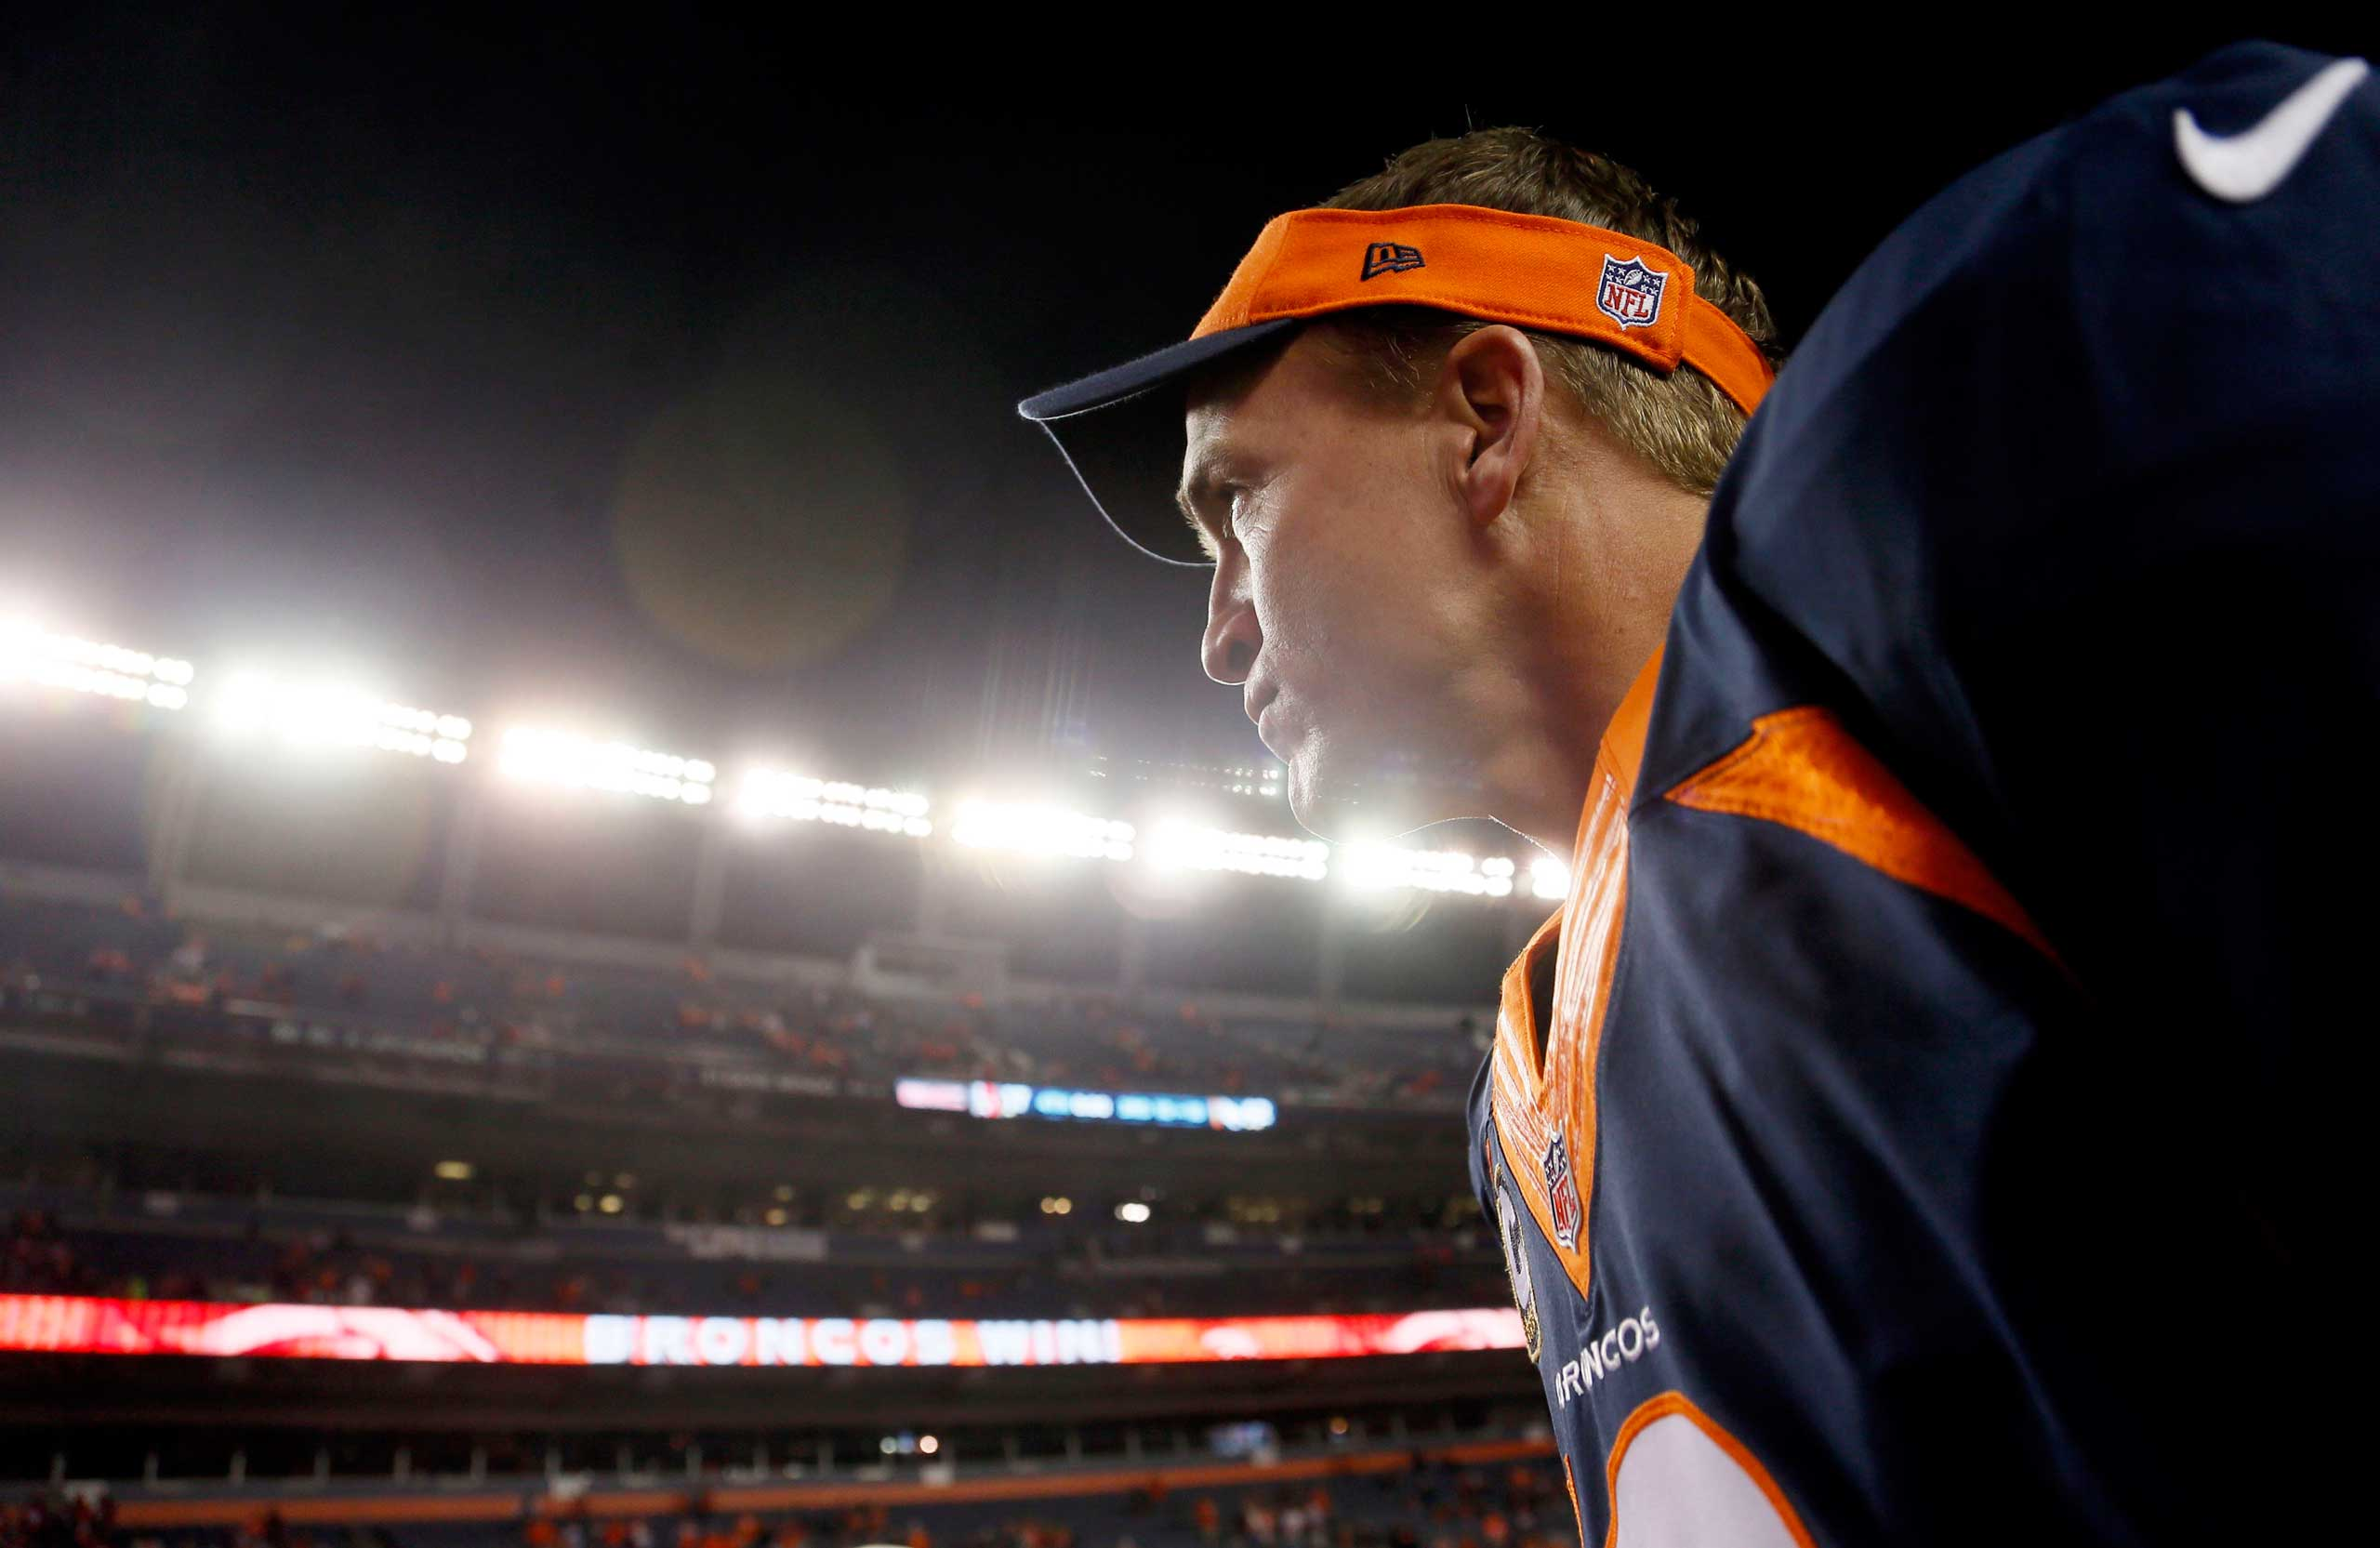 Oct. 19, 2014. Denver Broncos quarterback Peyton Manning leaves the field after an NFL football game against the San Francisco 49ers in Denver. Manning has broken Brett Favre's record for touchdown passes with his 509th. The Broncos won 42-17.